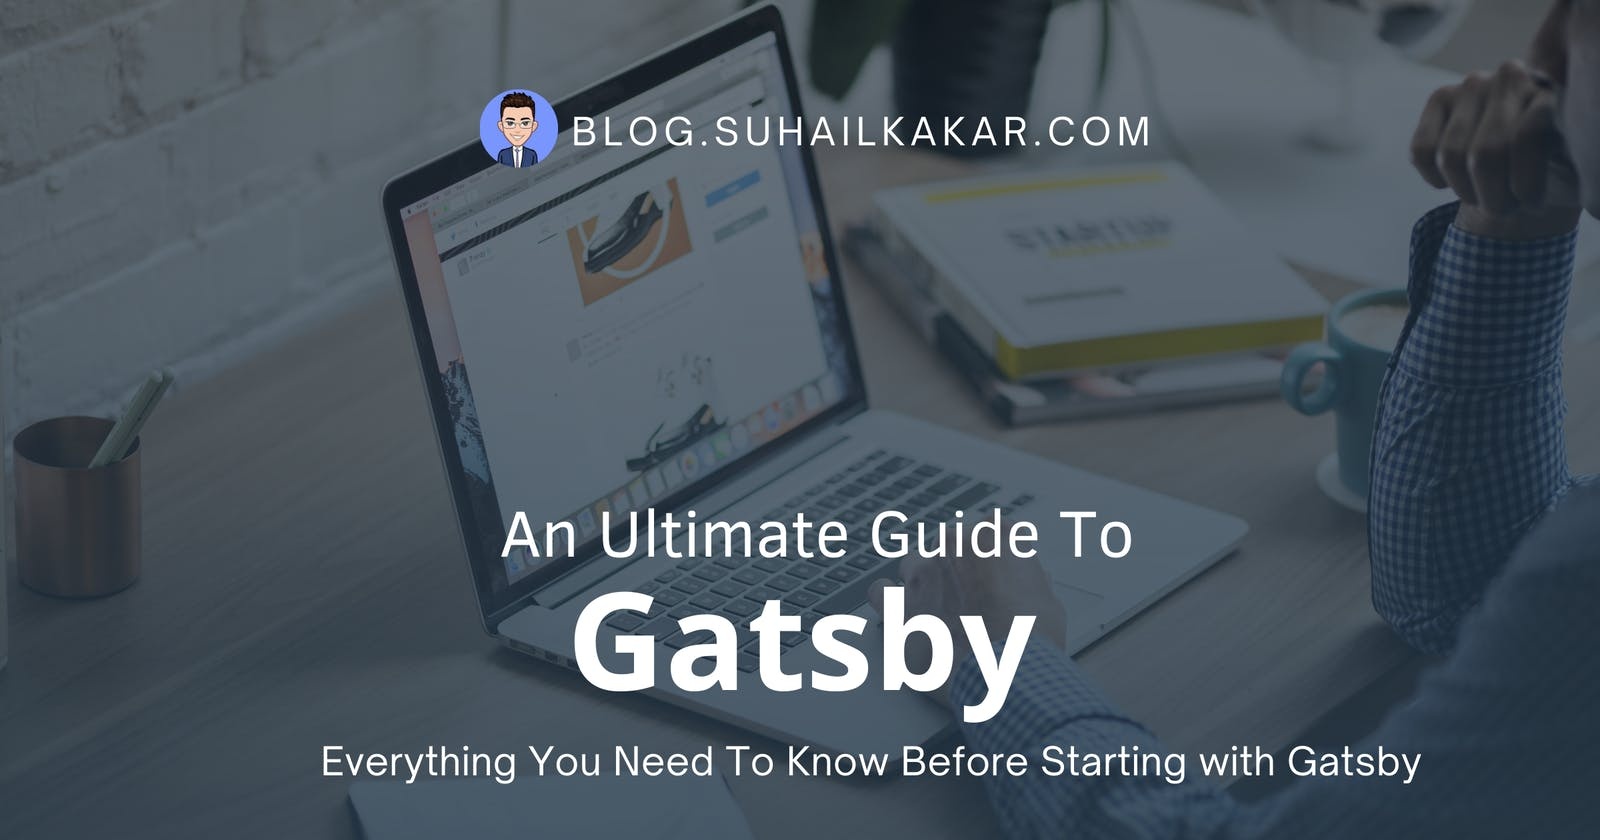 An Ultimate Guide To Gatsby - Everything You Need To Know Before Starting with Gatsby